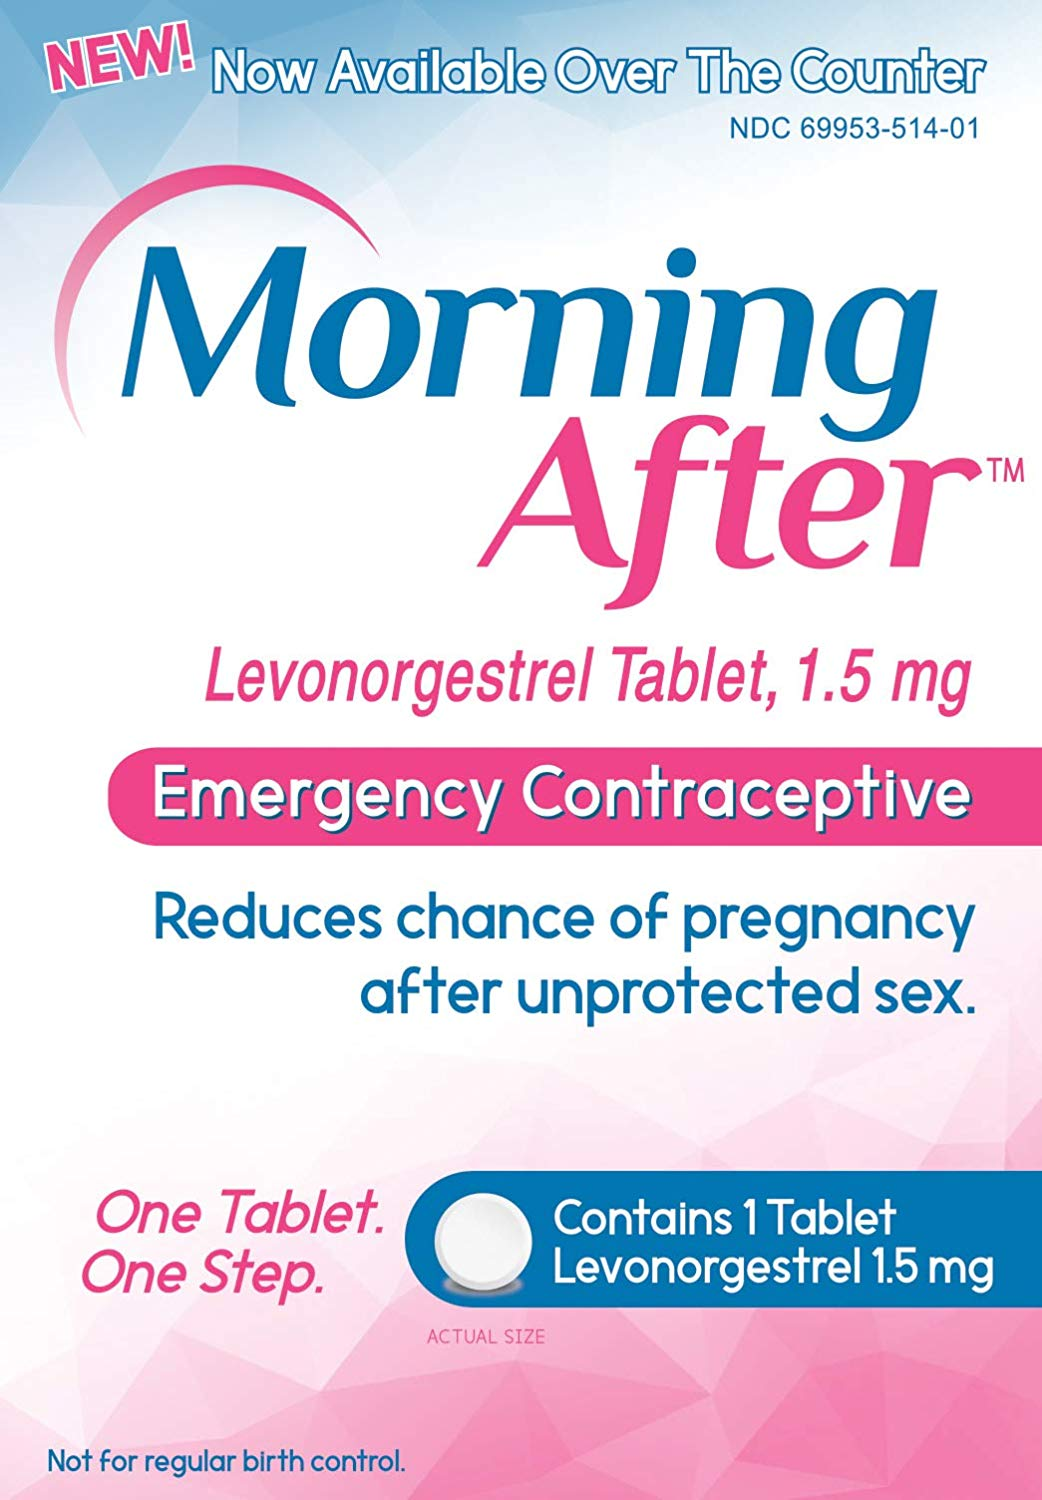 Review of Morning AfterTM Levonorgestrel Tablet, 1.5 mg Emergency Contraceptive Pill